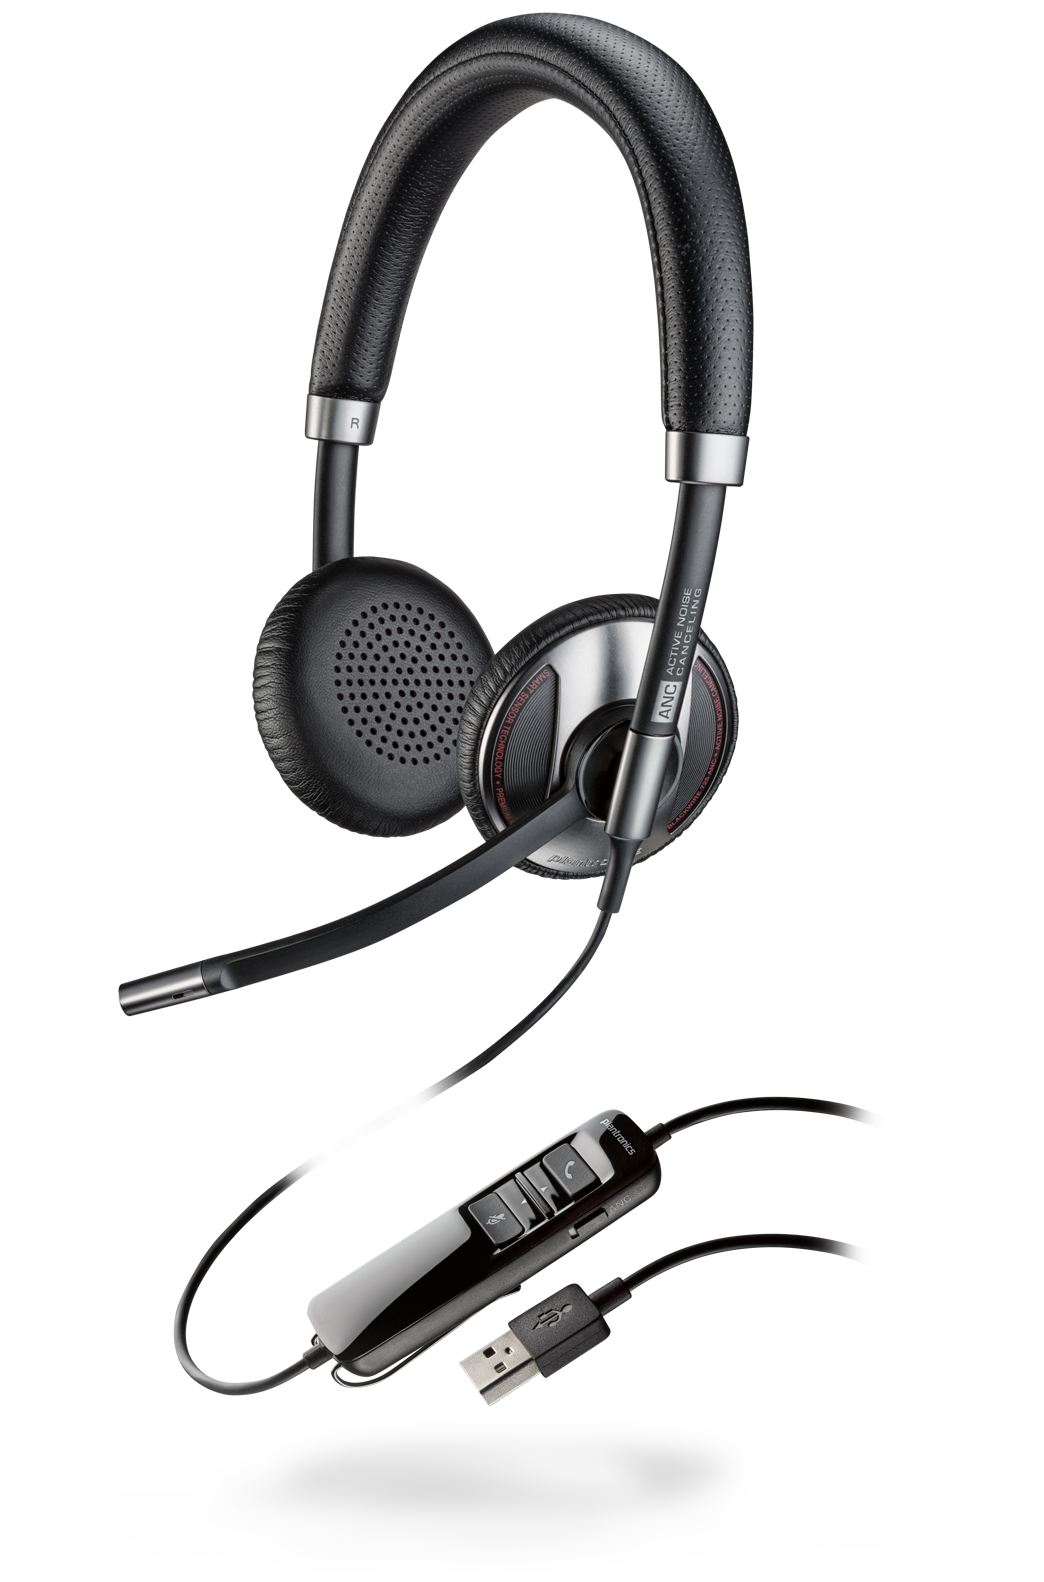 Plantronics Products - Headsets, Headphones, and Accessories | Plantronics